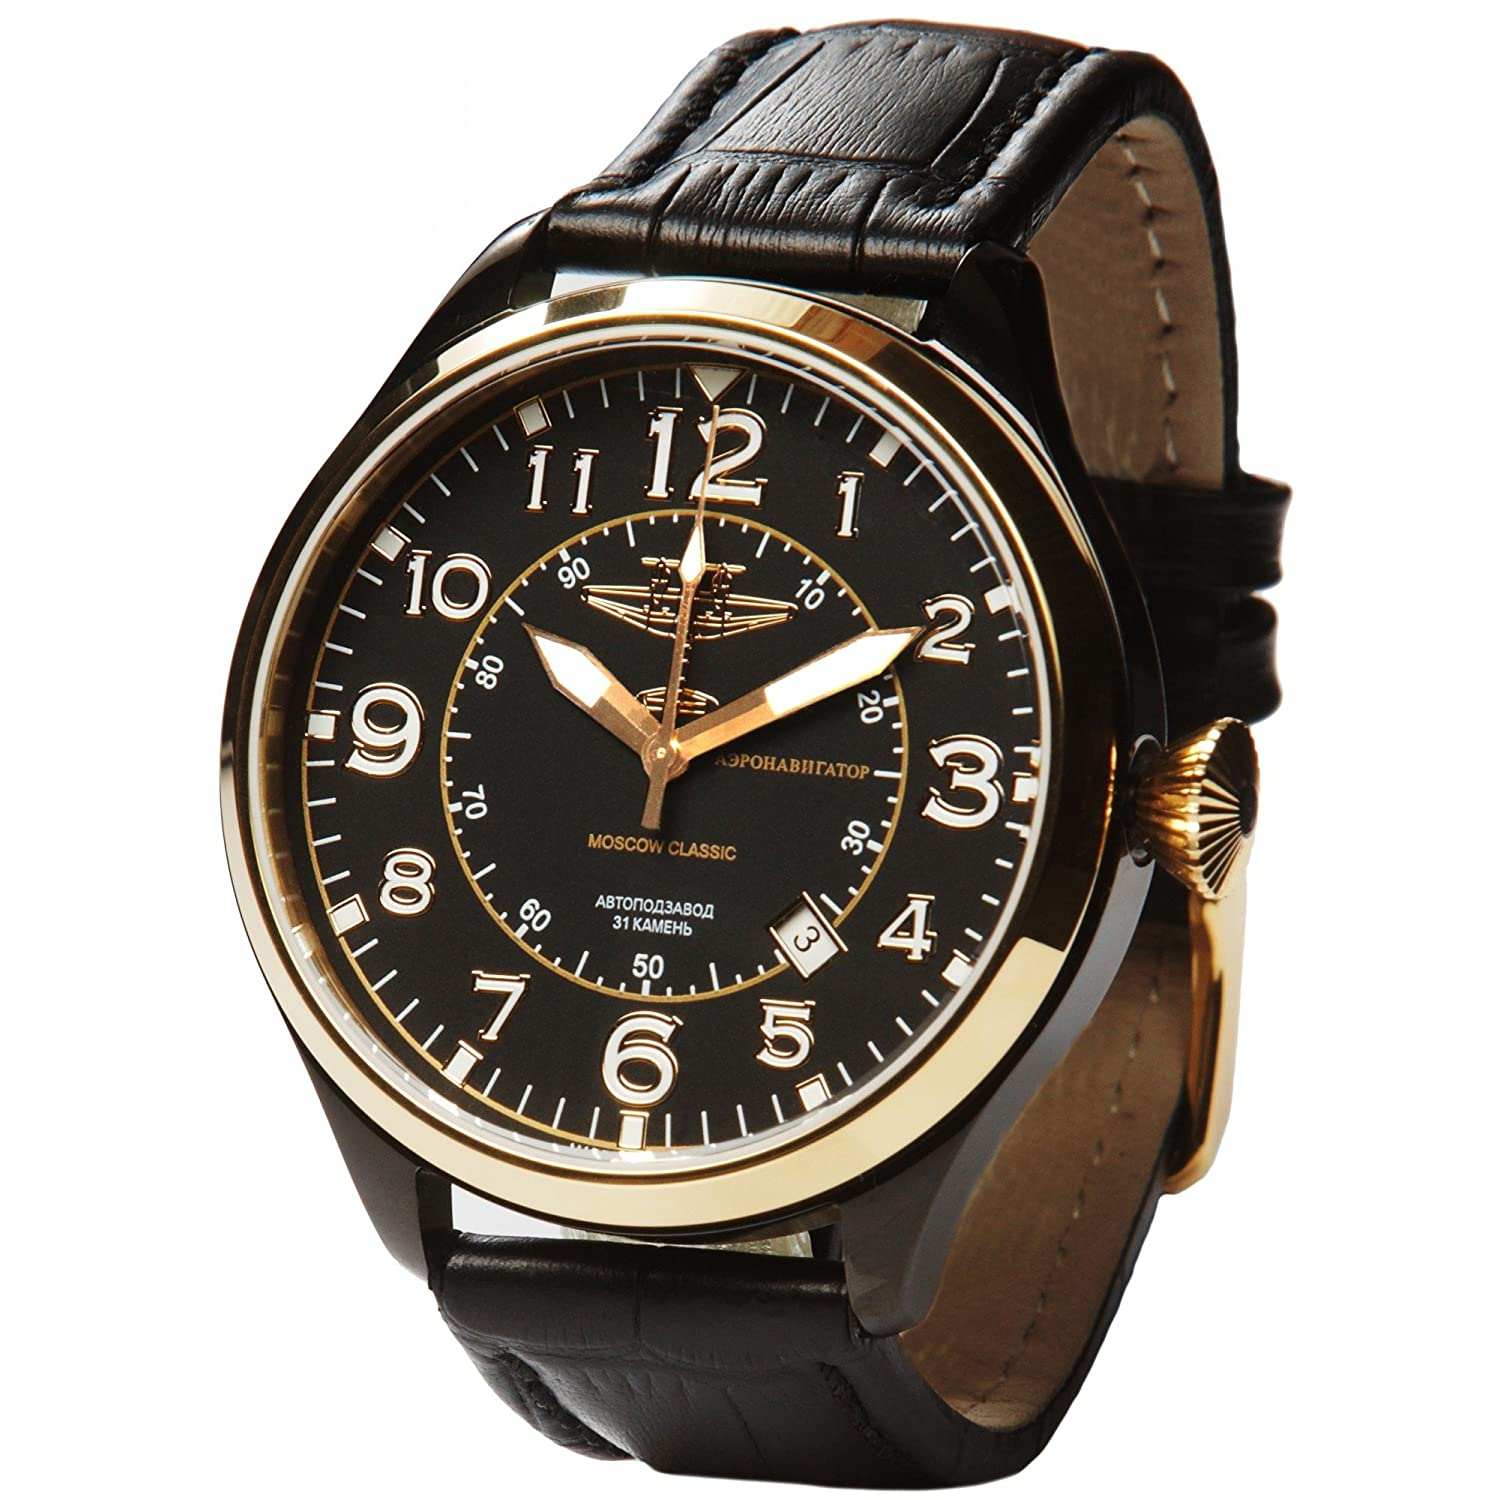 10 best men s watches for 500 dollars paperblog